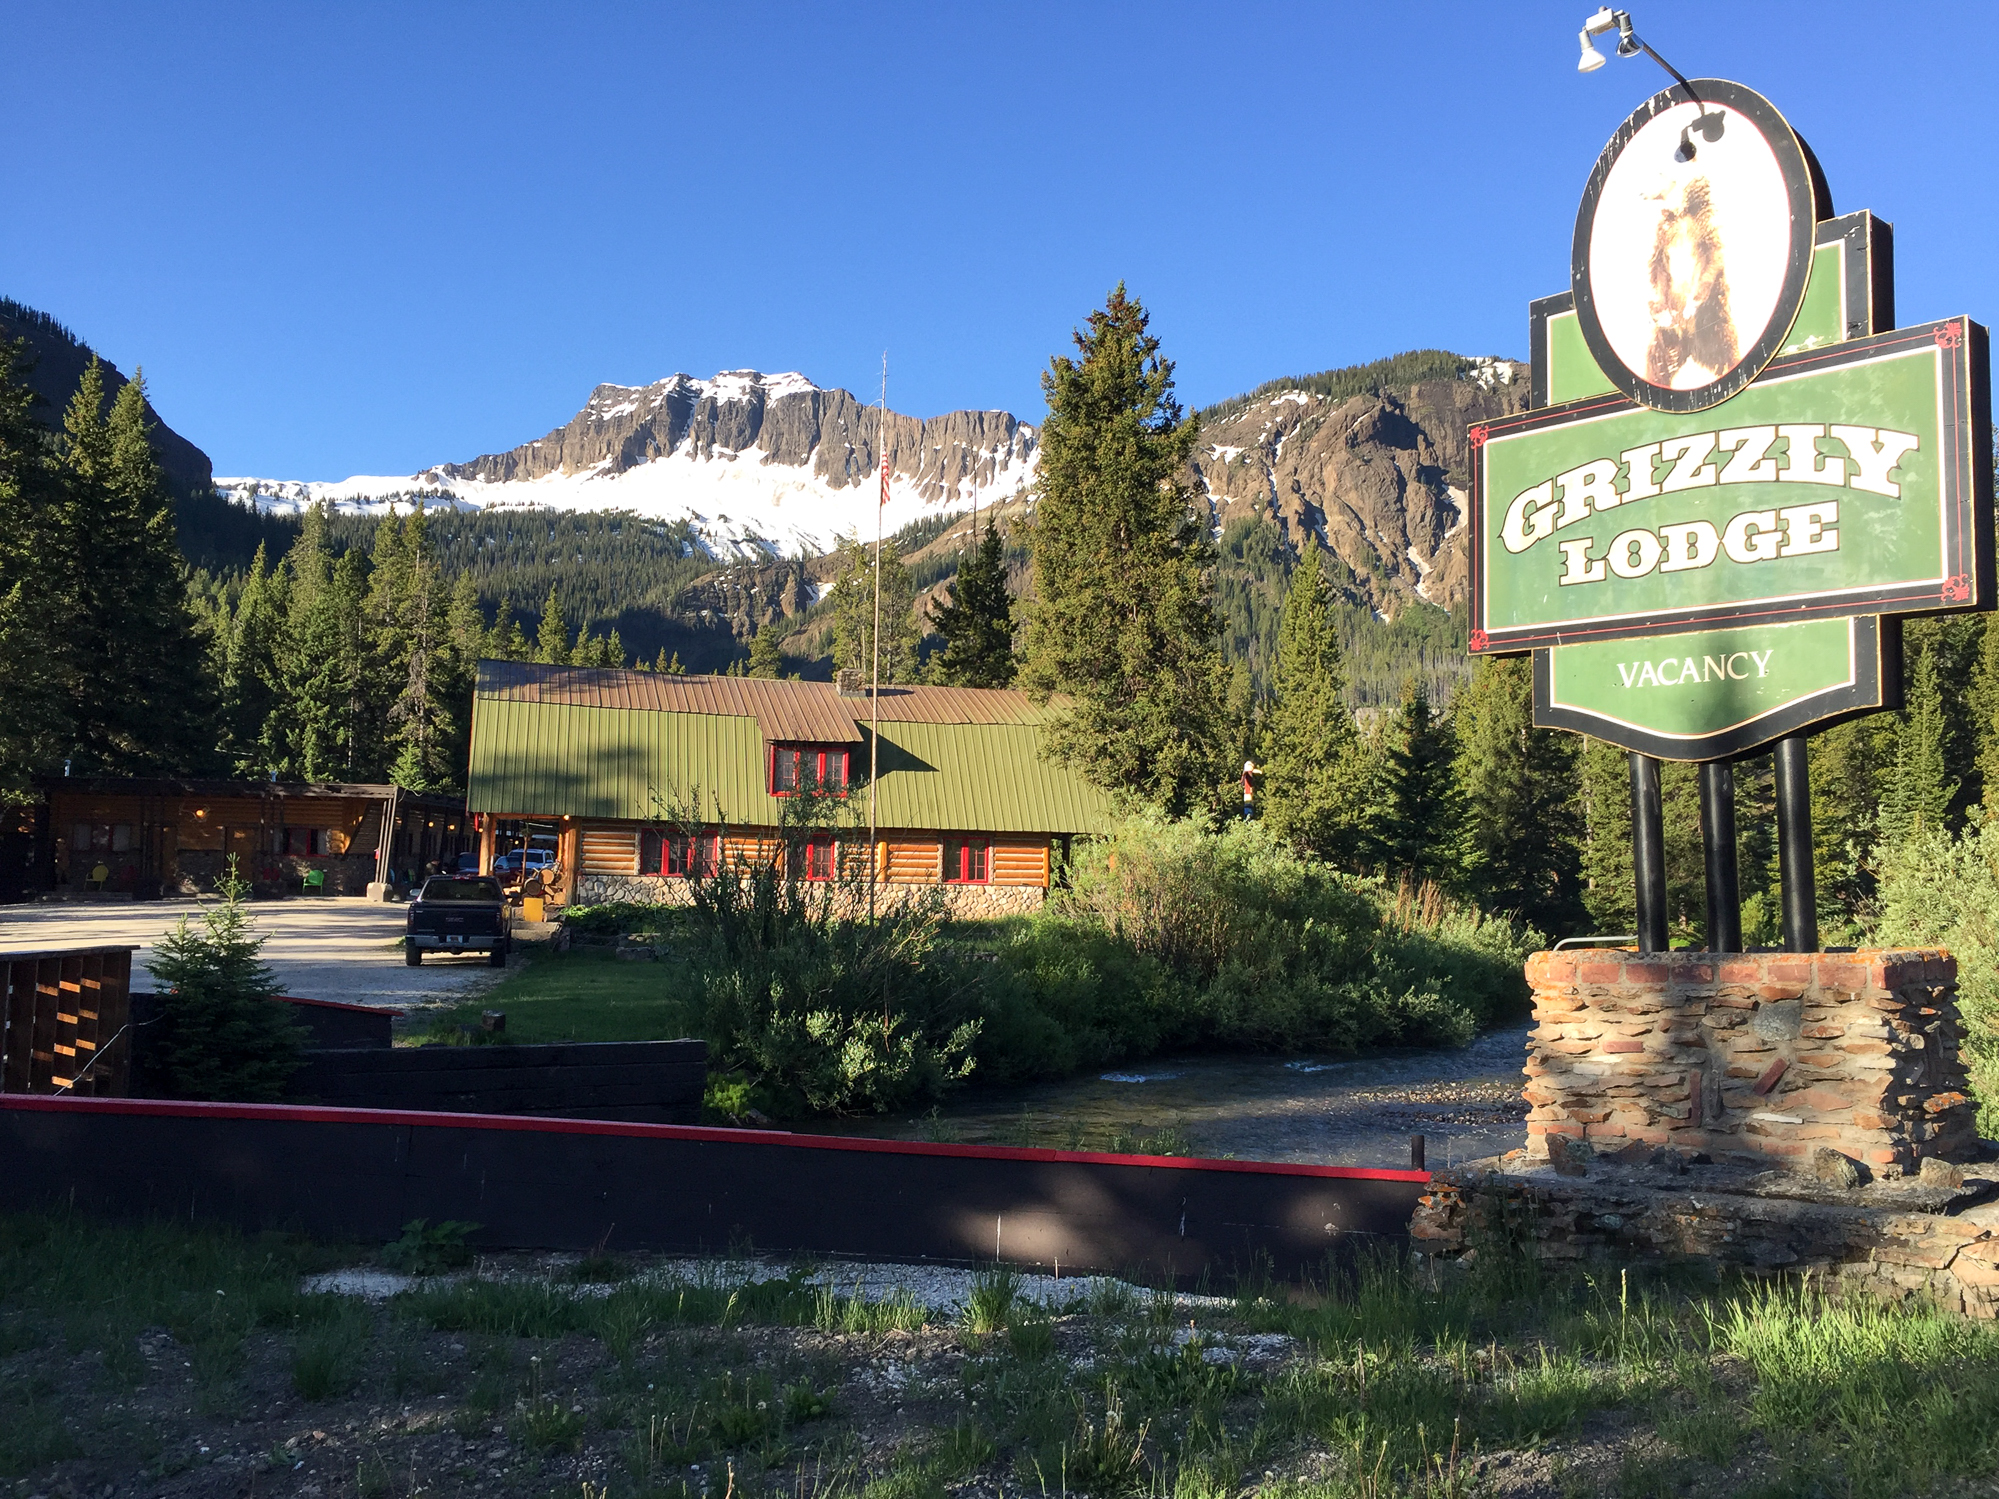 Grizzly Lodge-Cooke-Silvergate Montana, Image # 0146